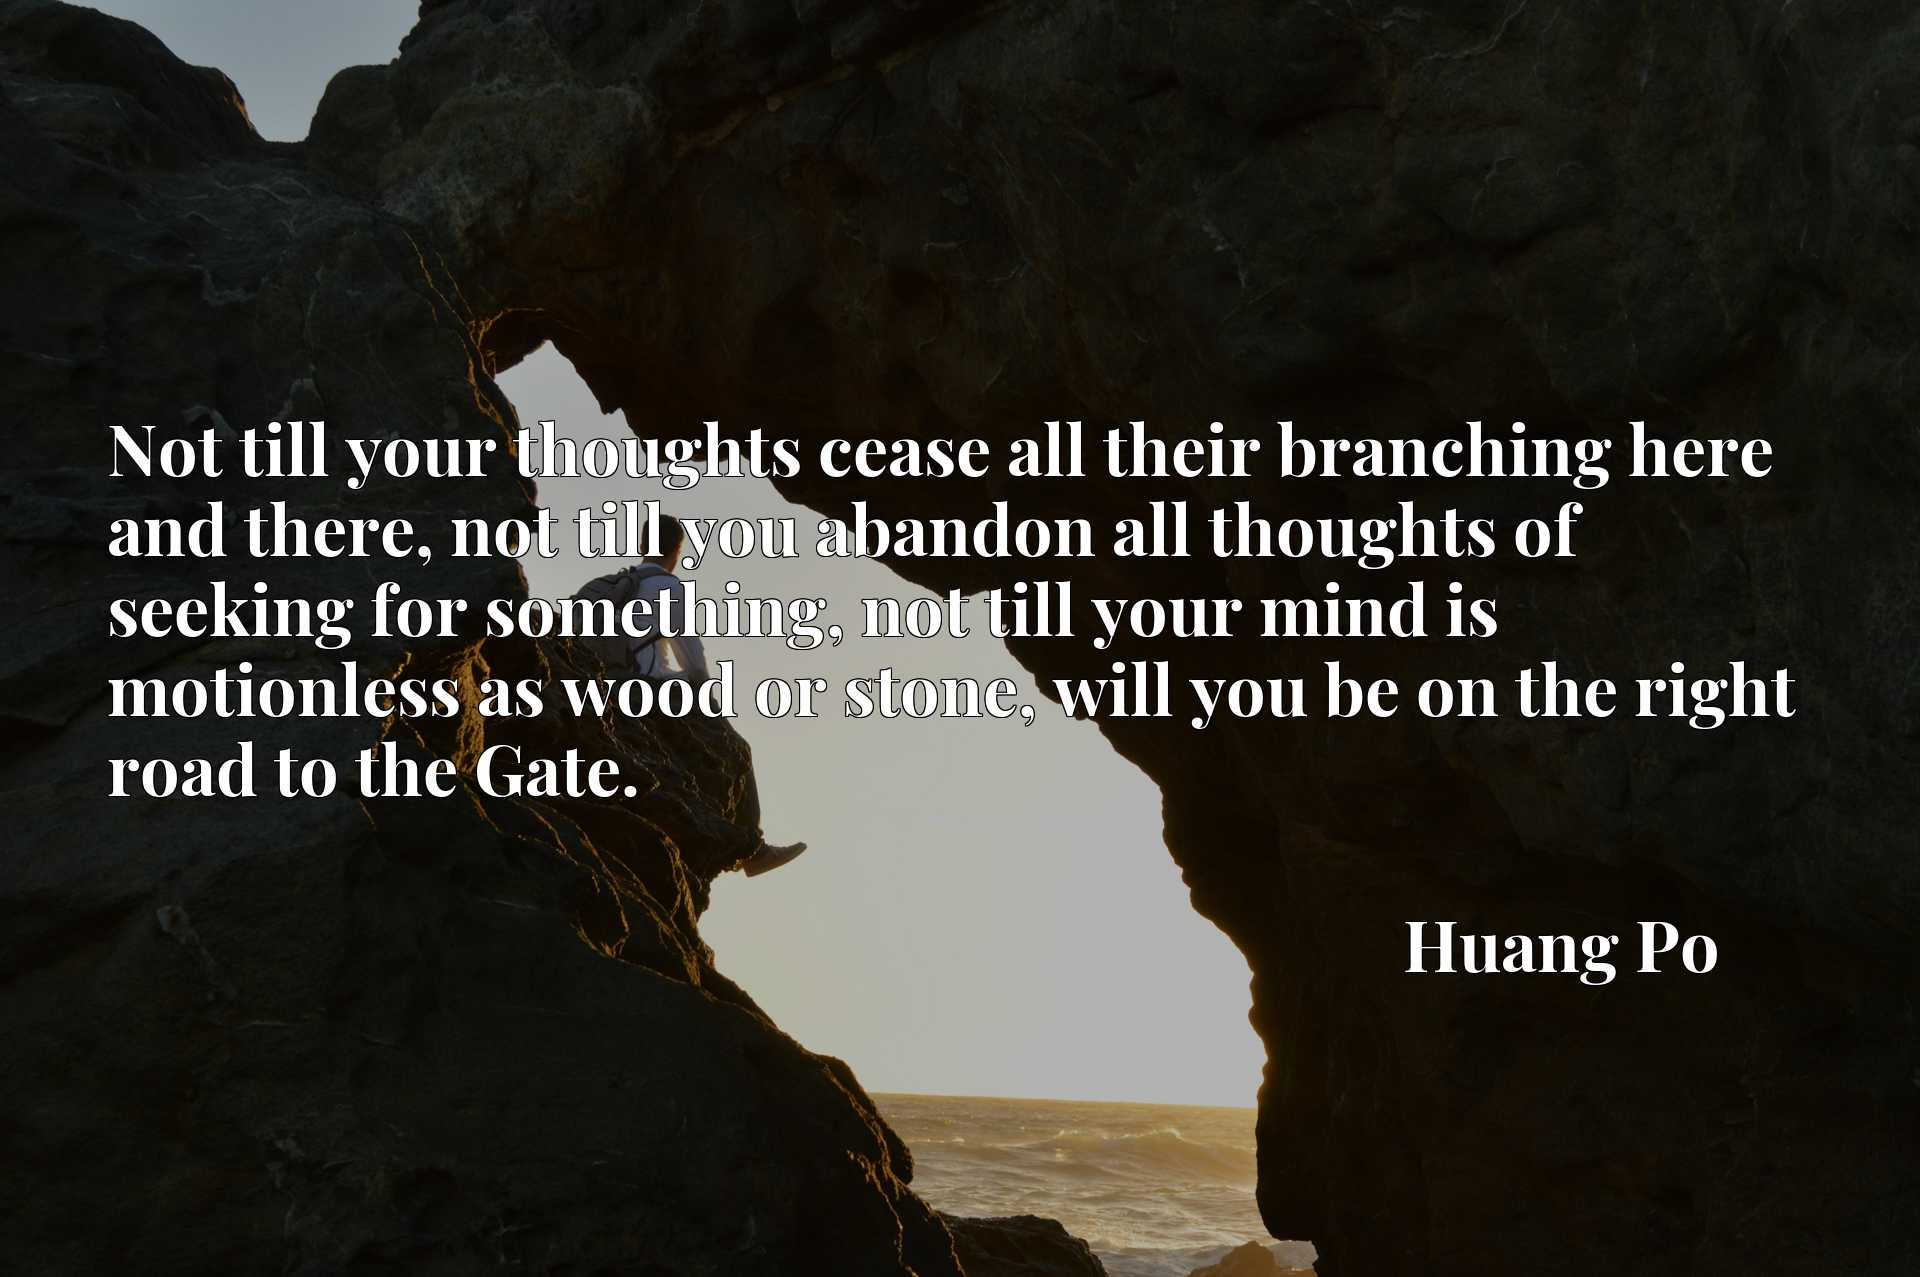 Not till your thoughts cease all their branching here and there, not till you abandon all thoughts of seeking for something, not till your mind is motionless as wood or stone, will you be on the right road to the Gate.